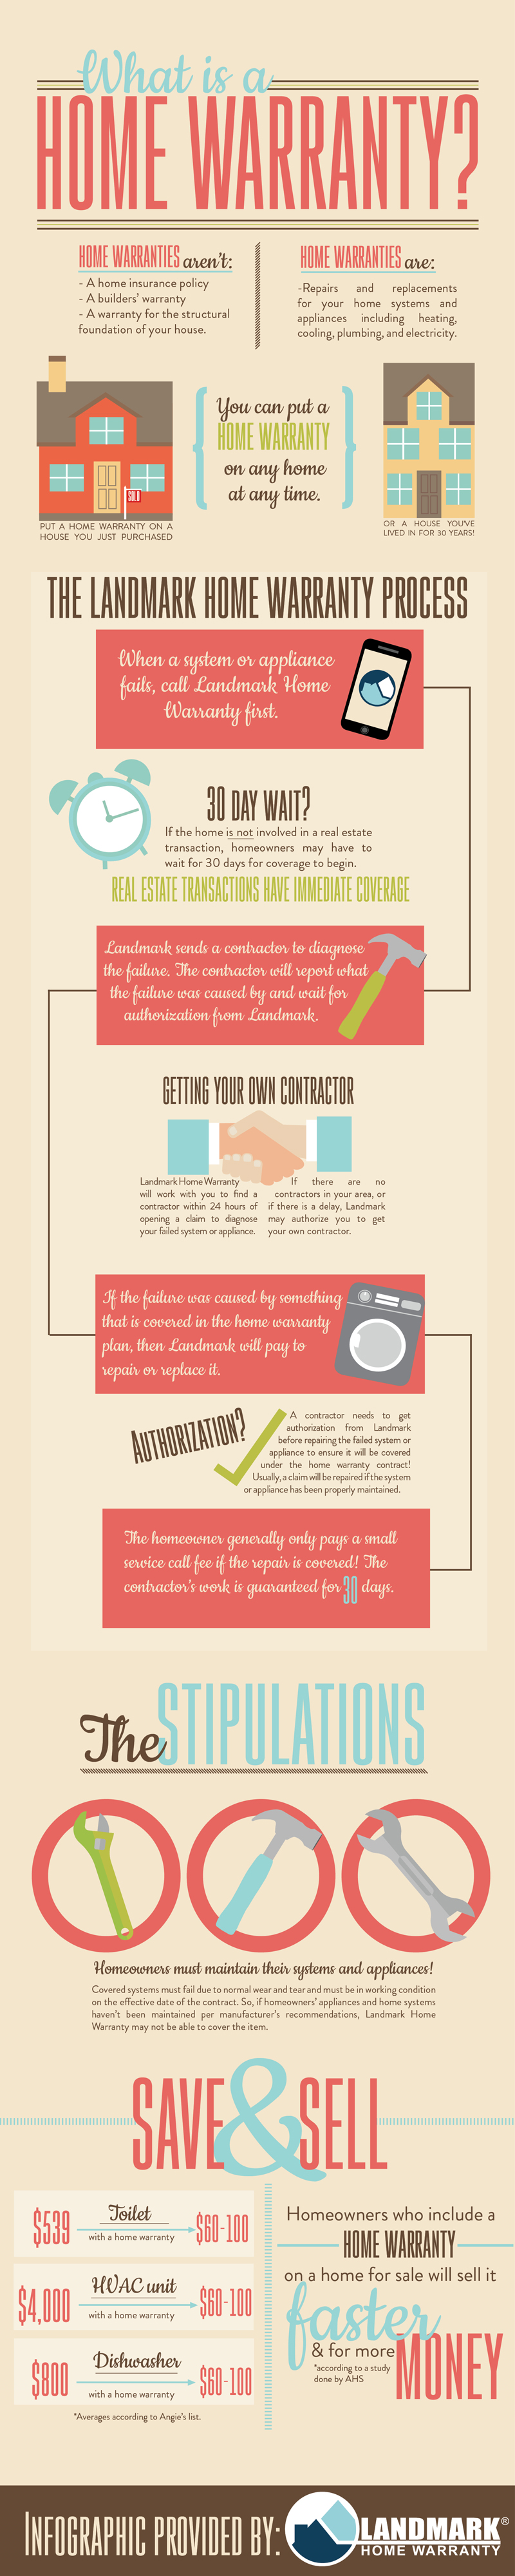 Learn what a home warranty is and when you can purchase one for your home with this infographic.